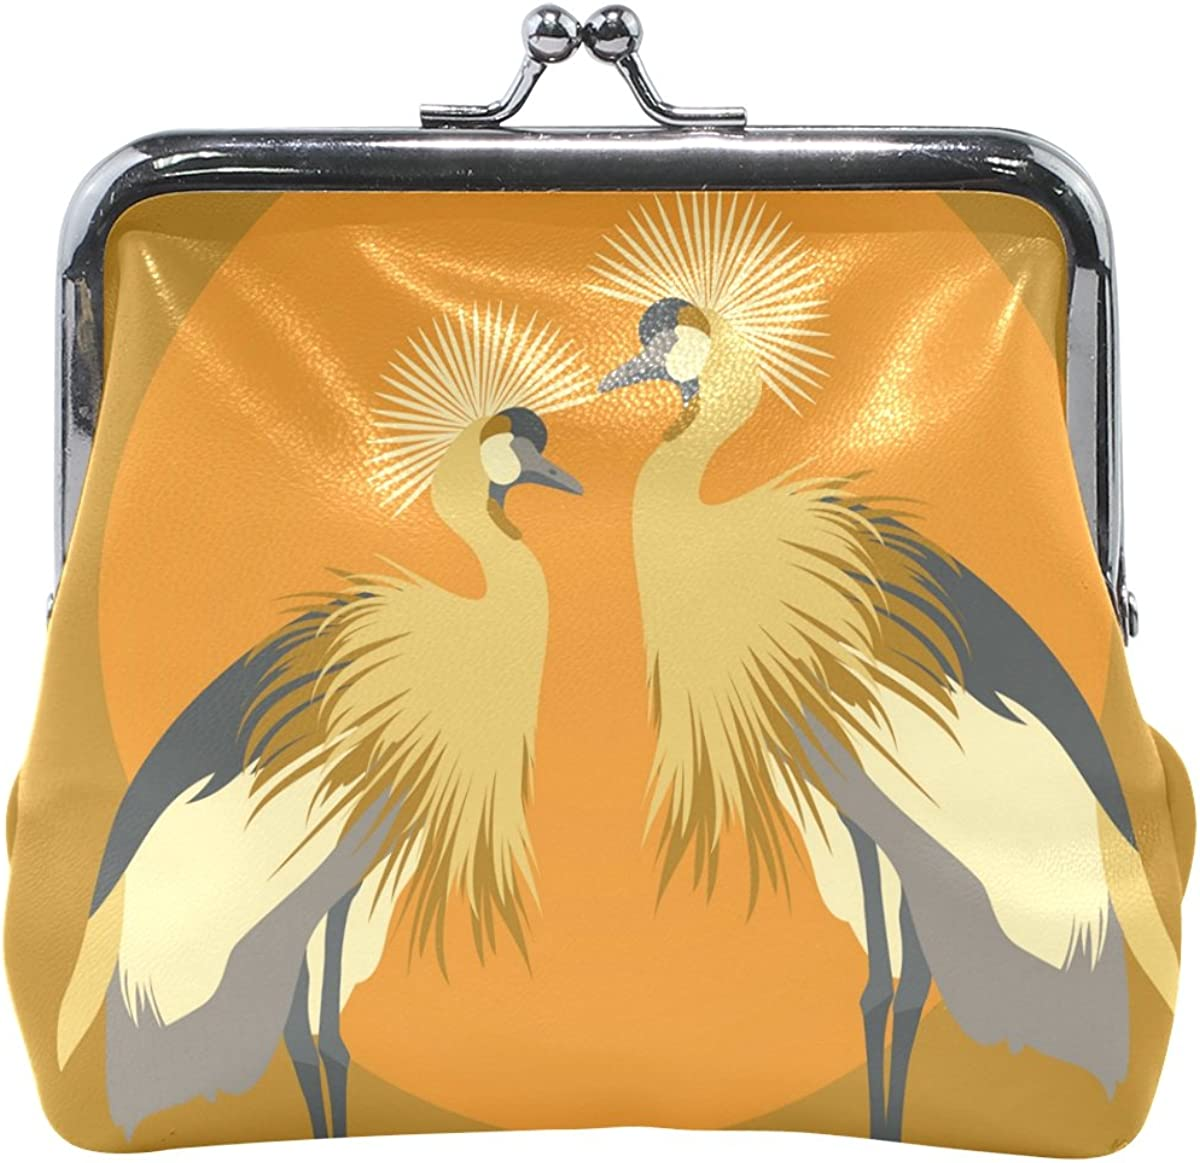 Sunlome Young Gallant Shadoof Crane Coin Purse Change Cash Bag Small Purse Wallets for Women Girl